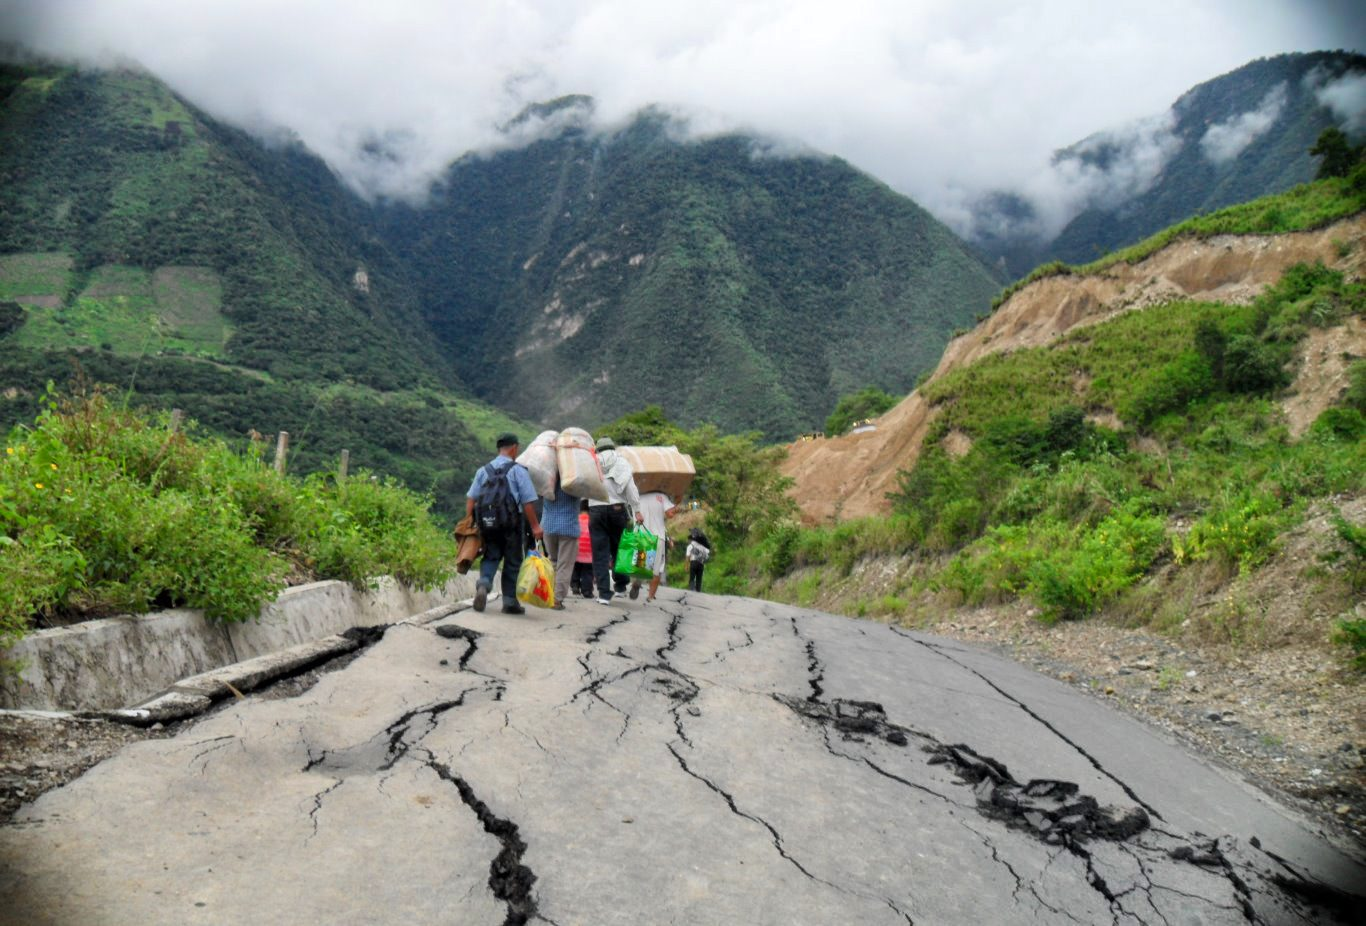 Things to know before you go to Peru: Natural Hazards